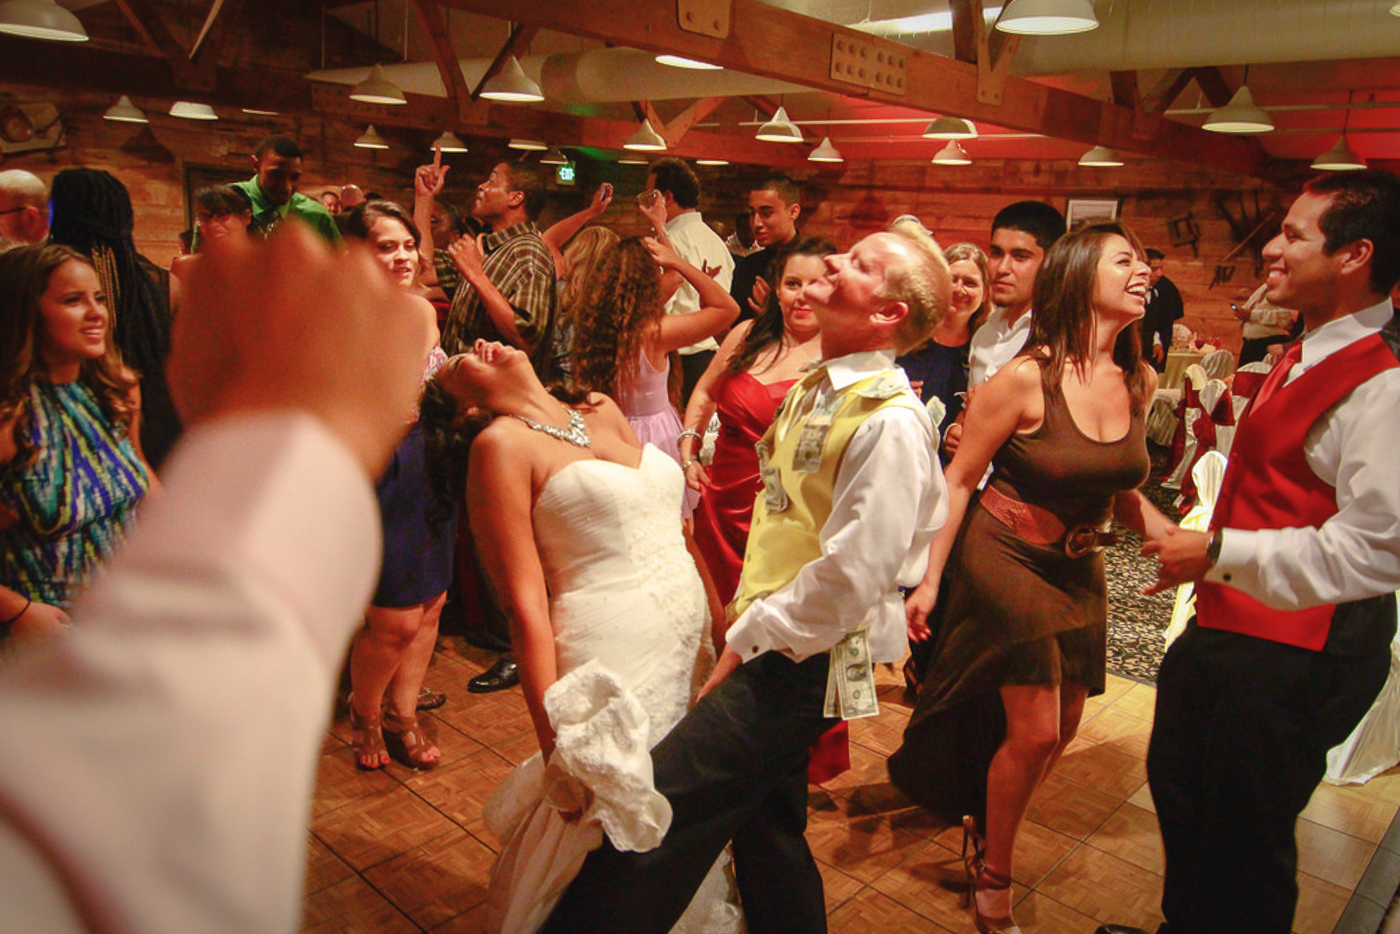 Bride and groom dancing at wedding reception at orange county mining co